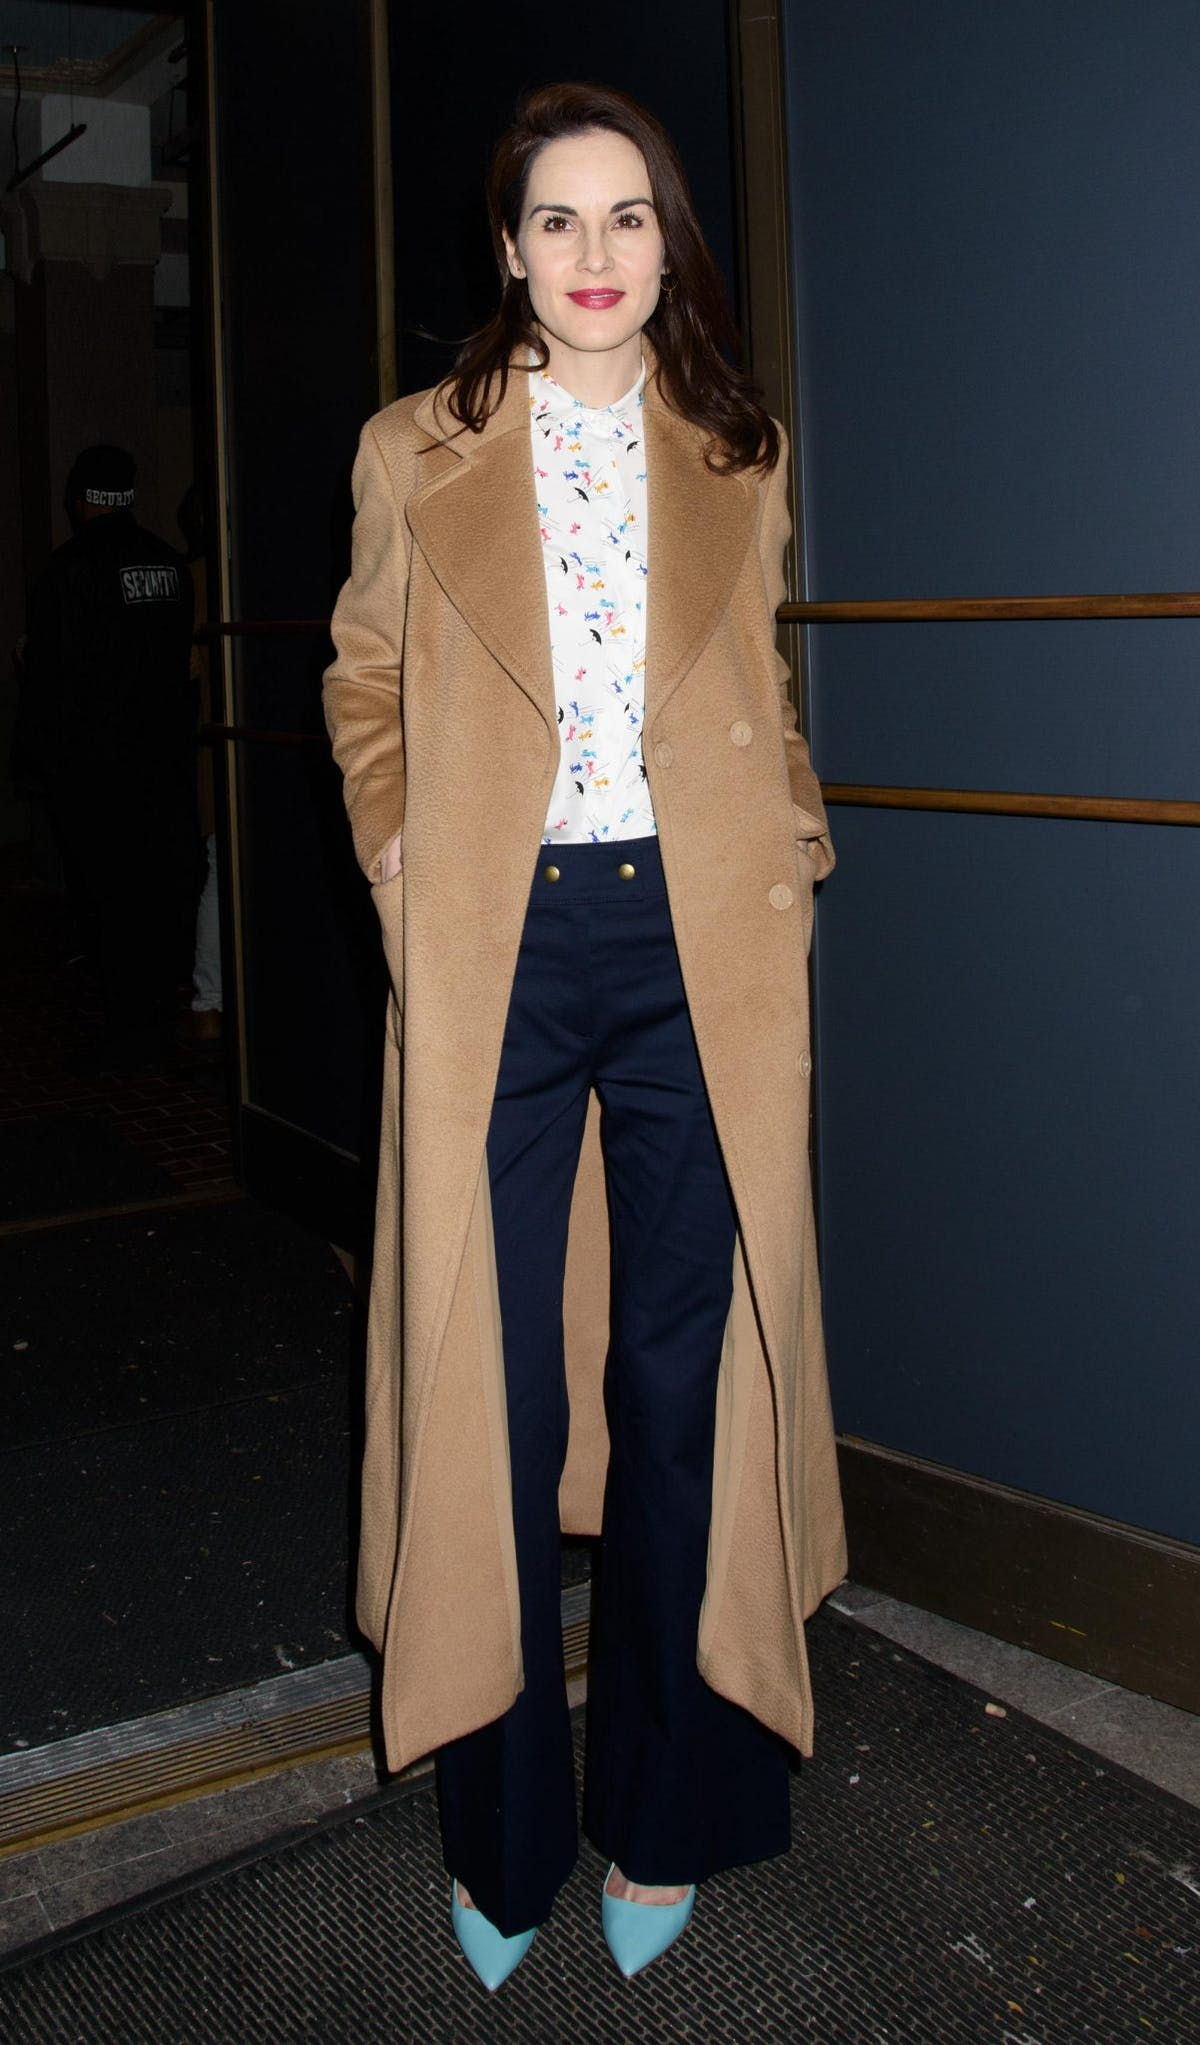 ae7aa6e0b516 Get daily outfit inspiration with our round-up of the best A-list ...